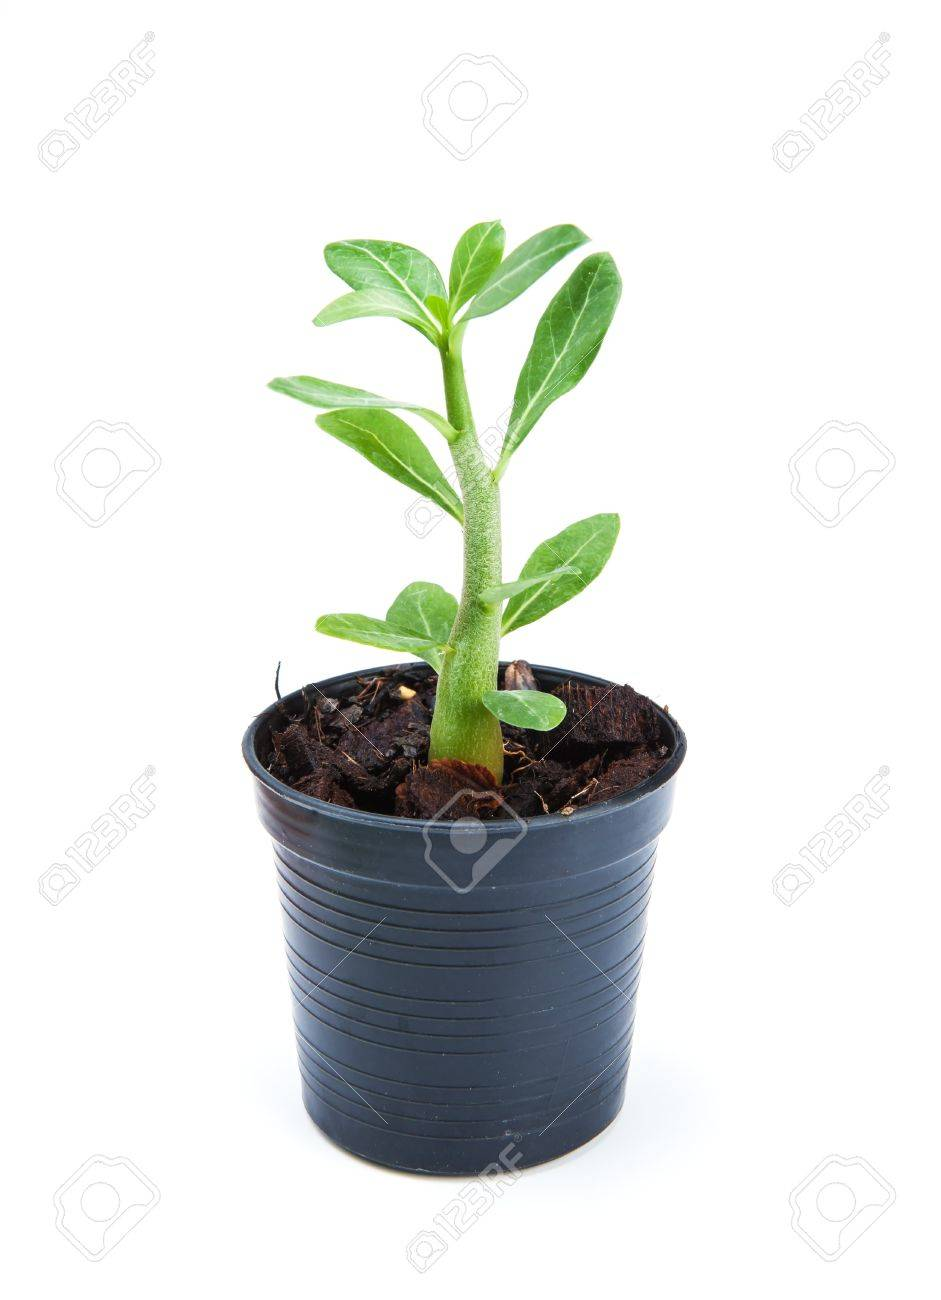 small ornamental plants in flowerpot on white background stock